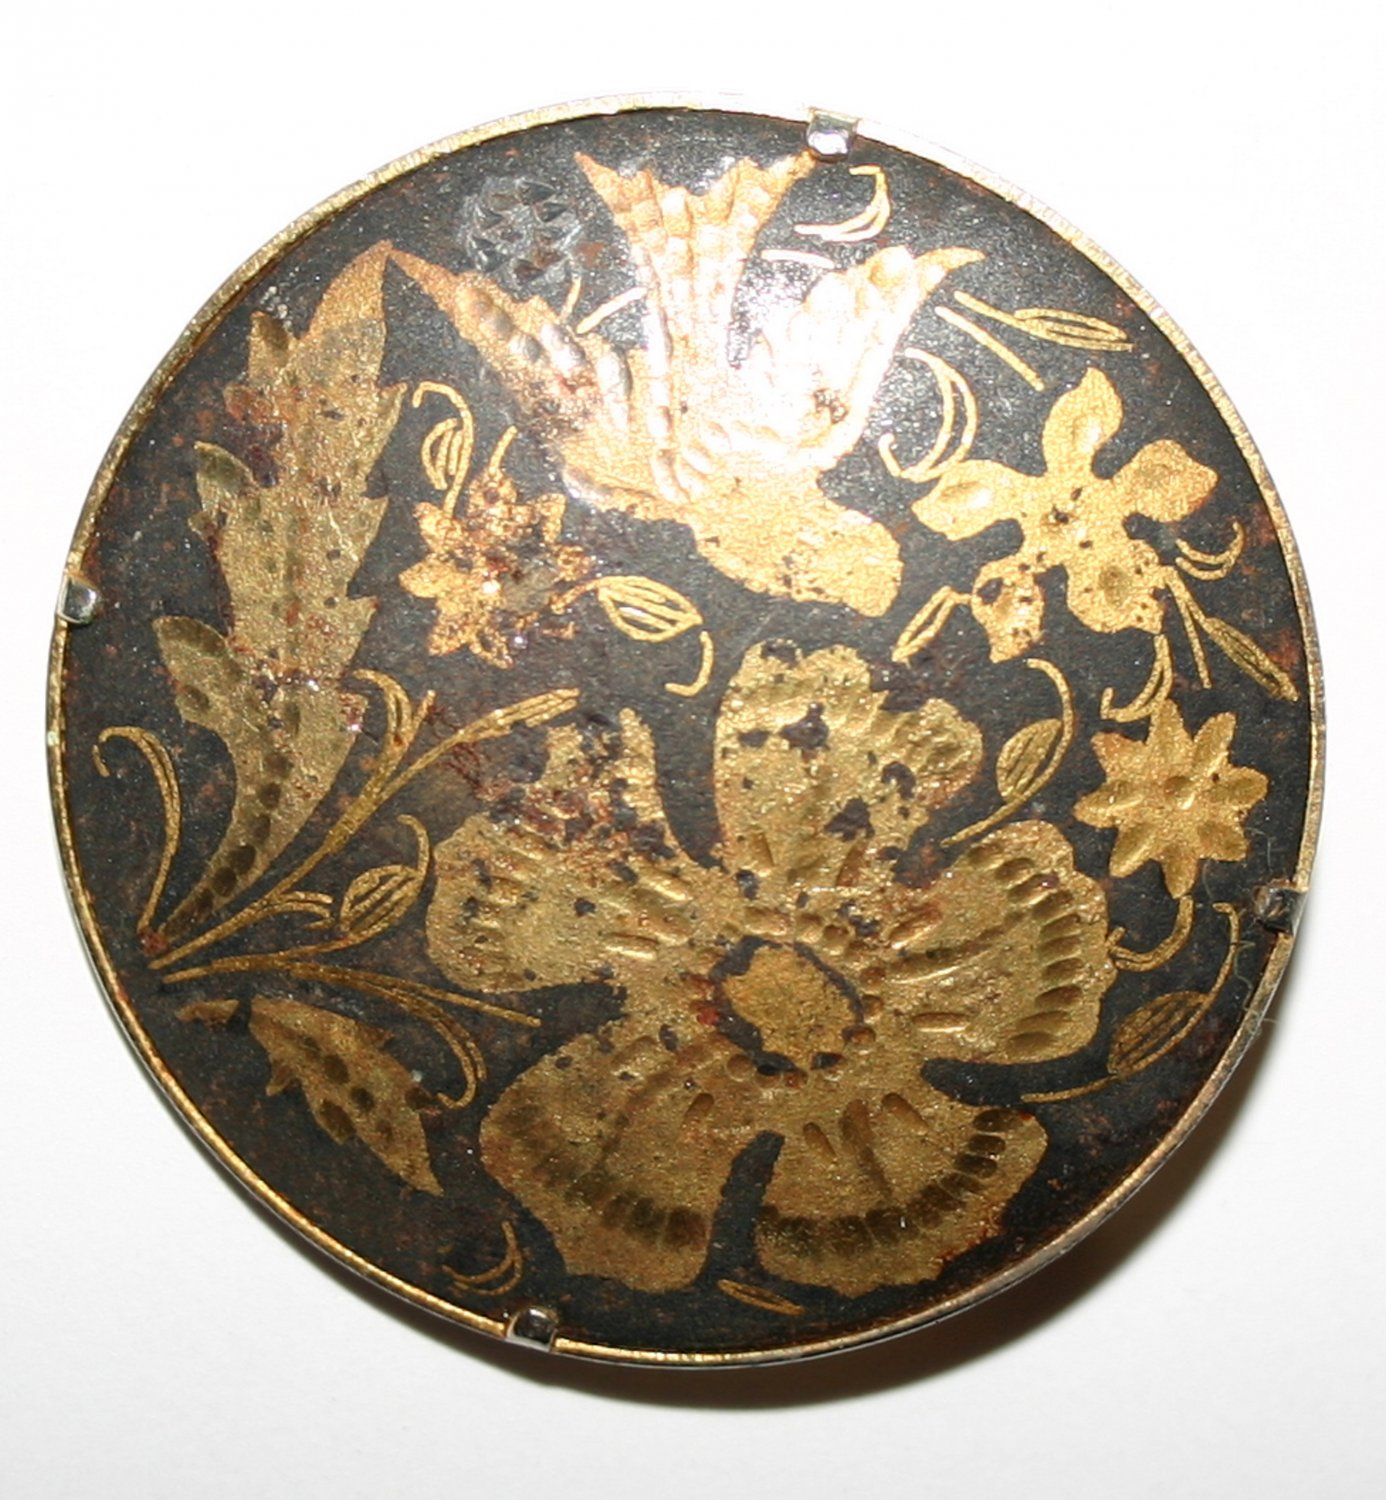 Vintage Circular Gold and Black Brooch Featuring Nature Scene Bird and Flowers